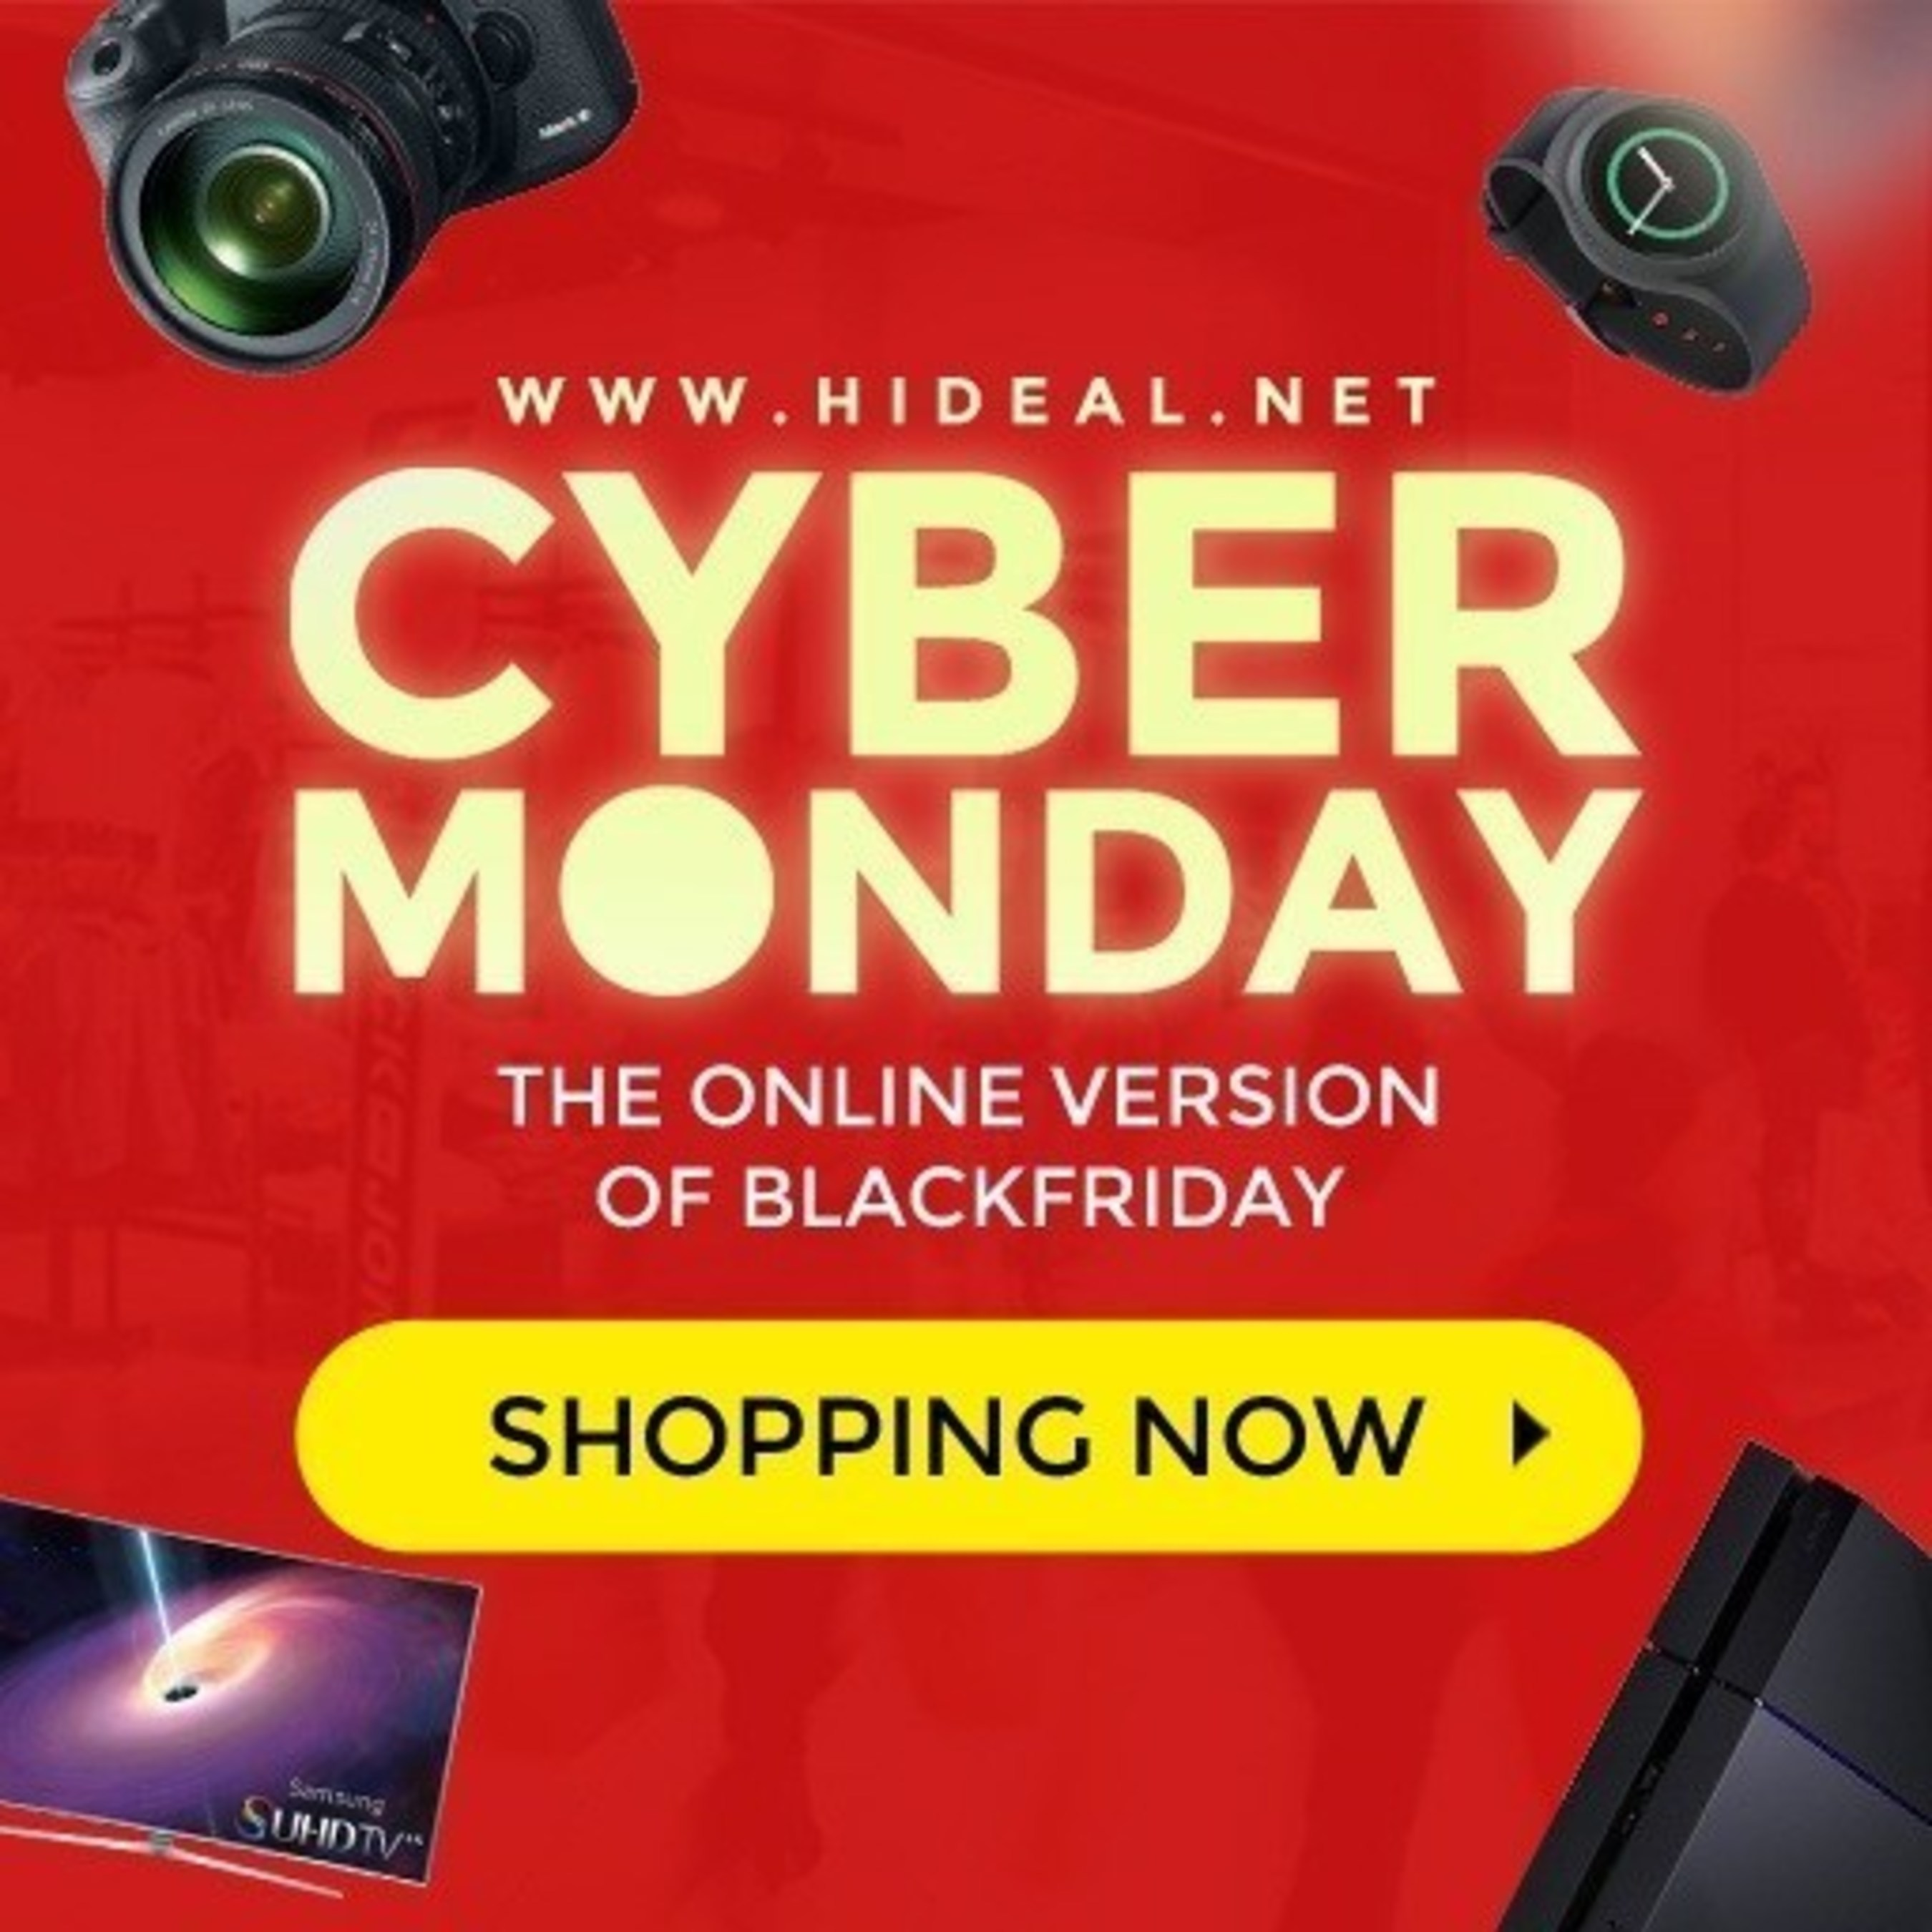 Best Cyber Monday 2015 Deals At Top Retailers Presented By Hideal Net